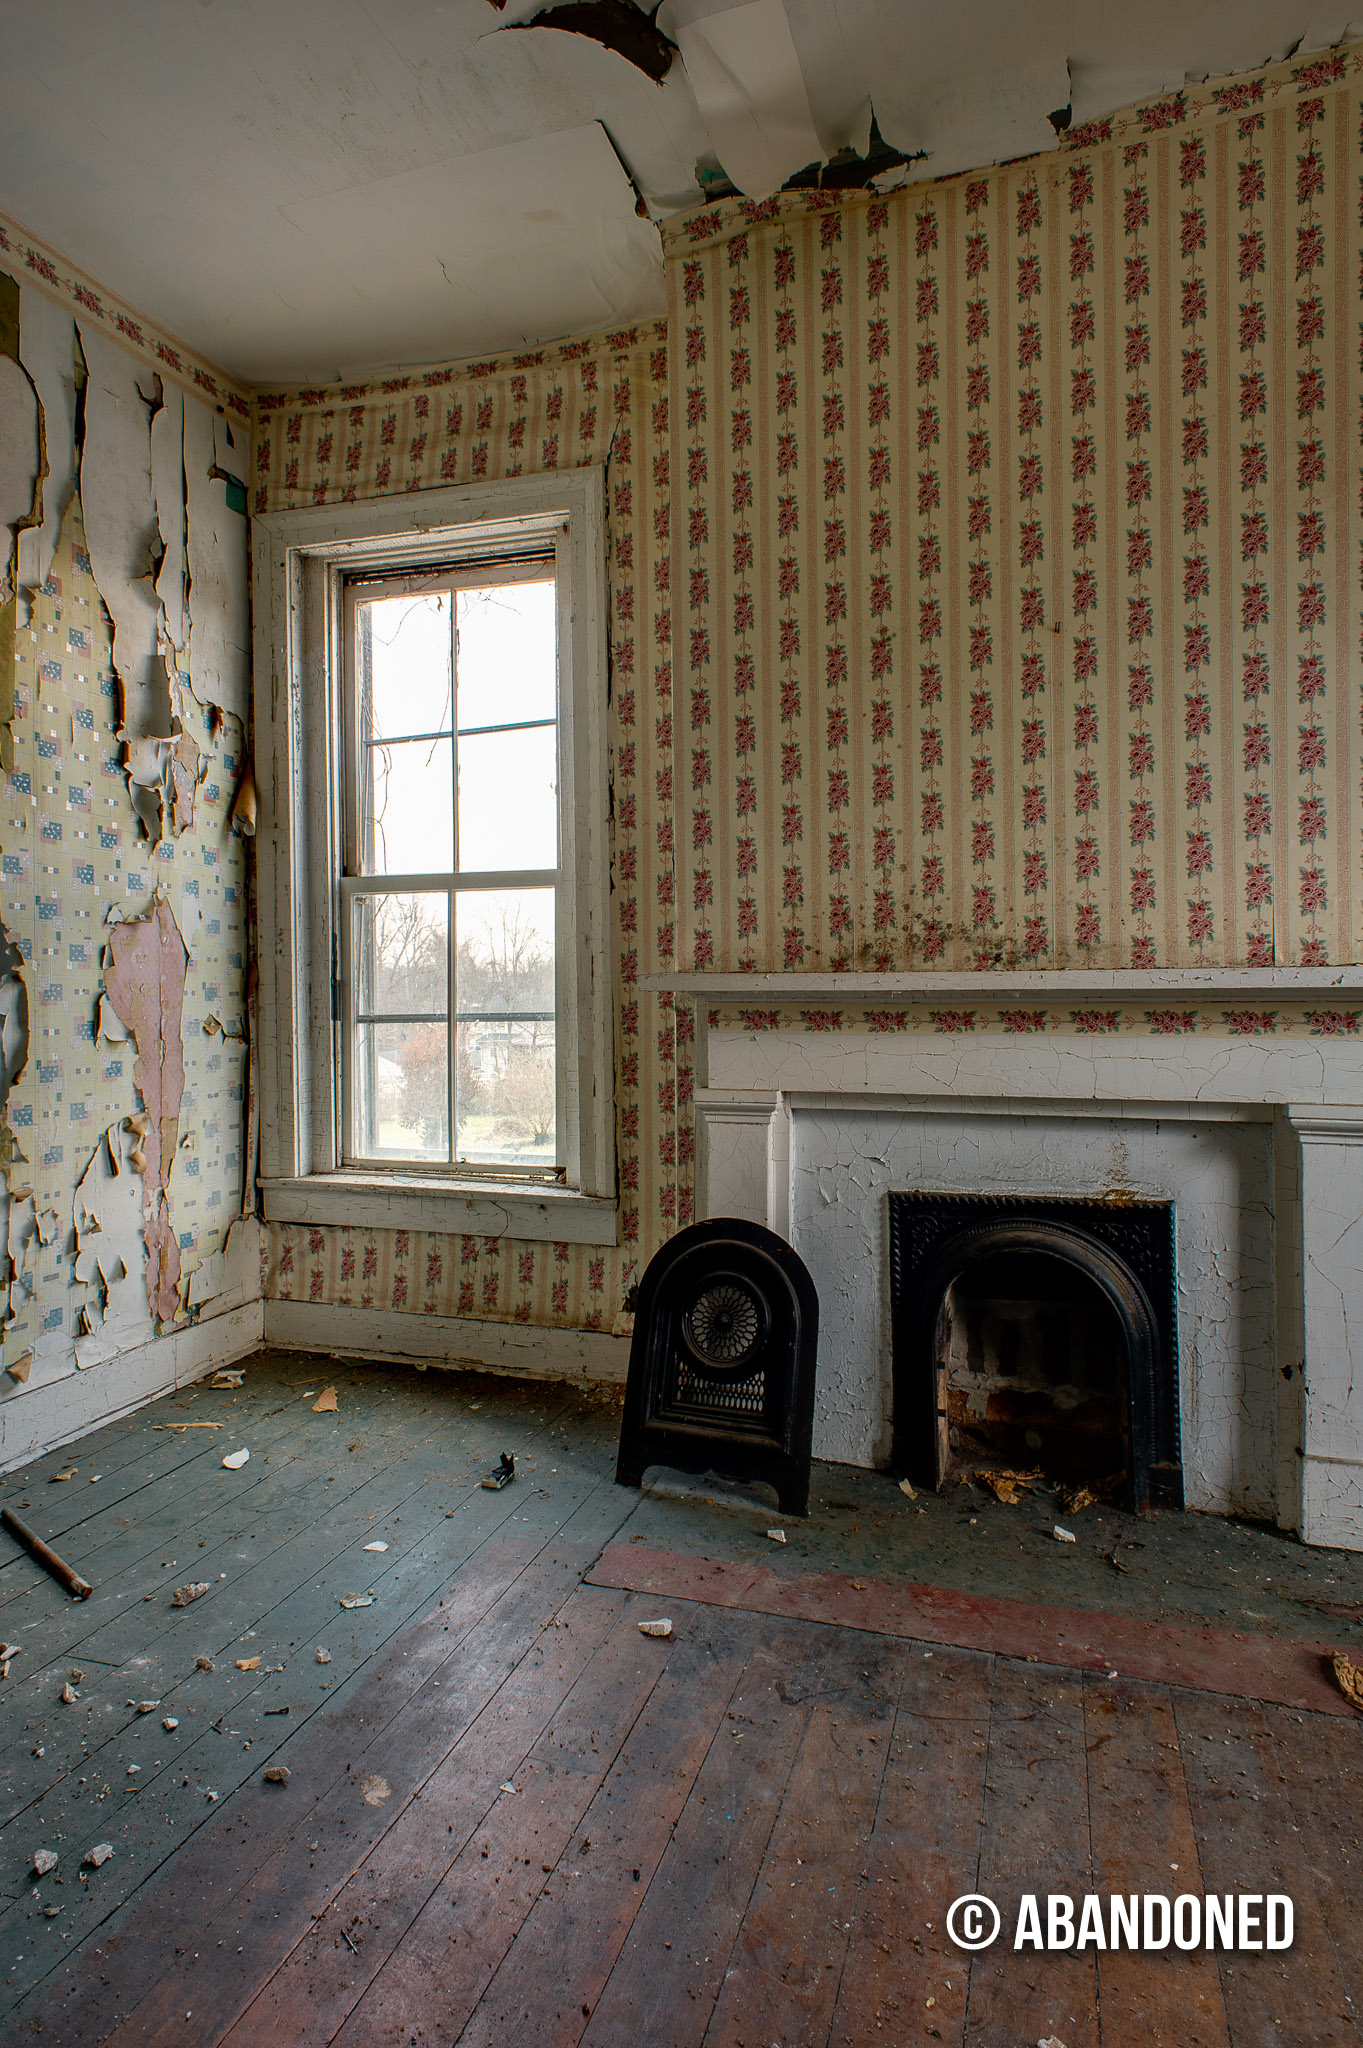 fisher byington house abandoned by sherman cahal